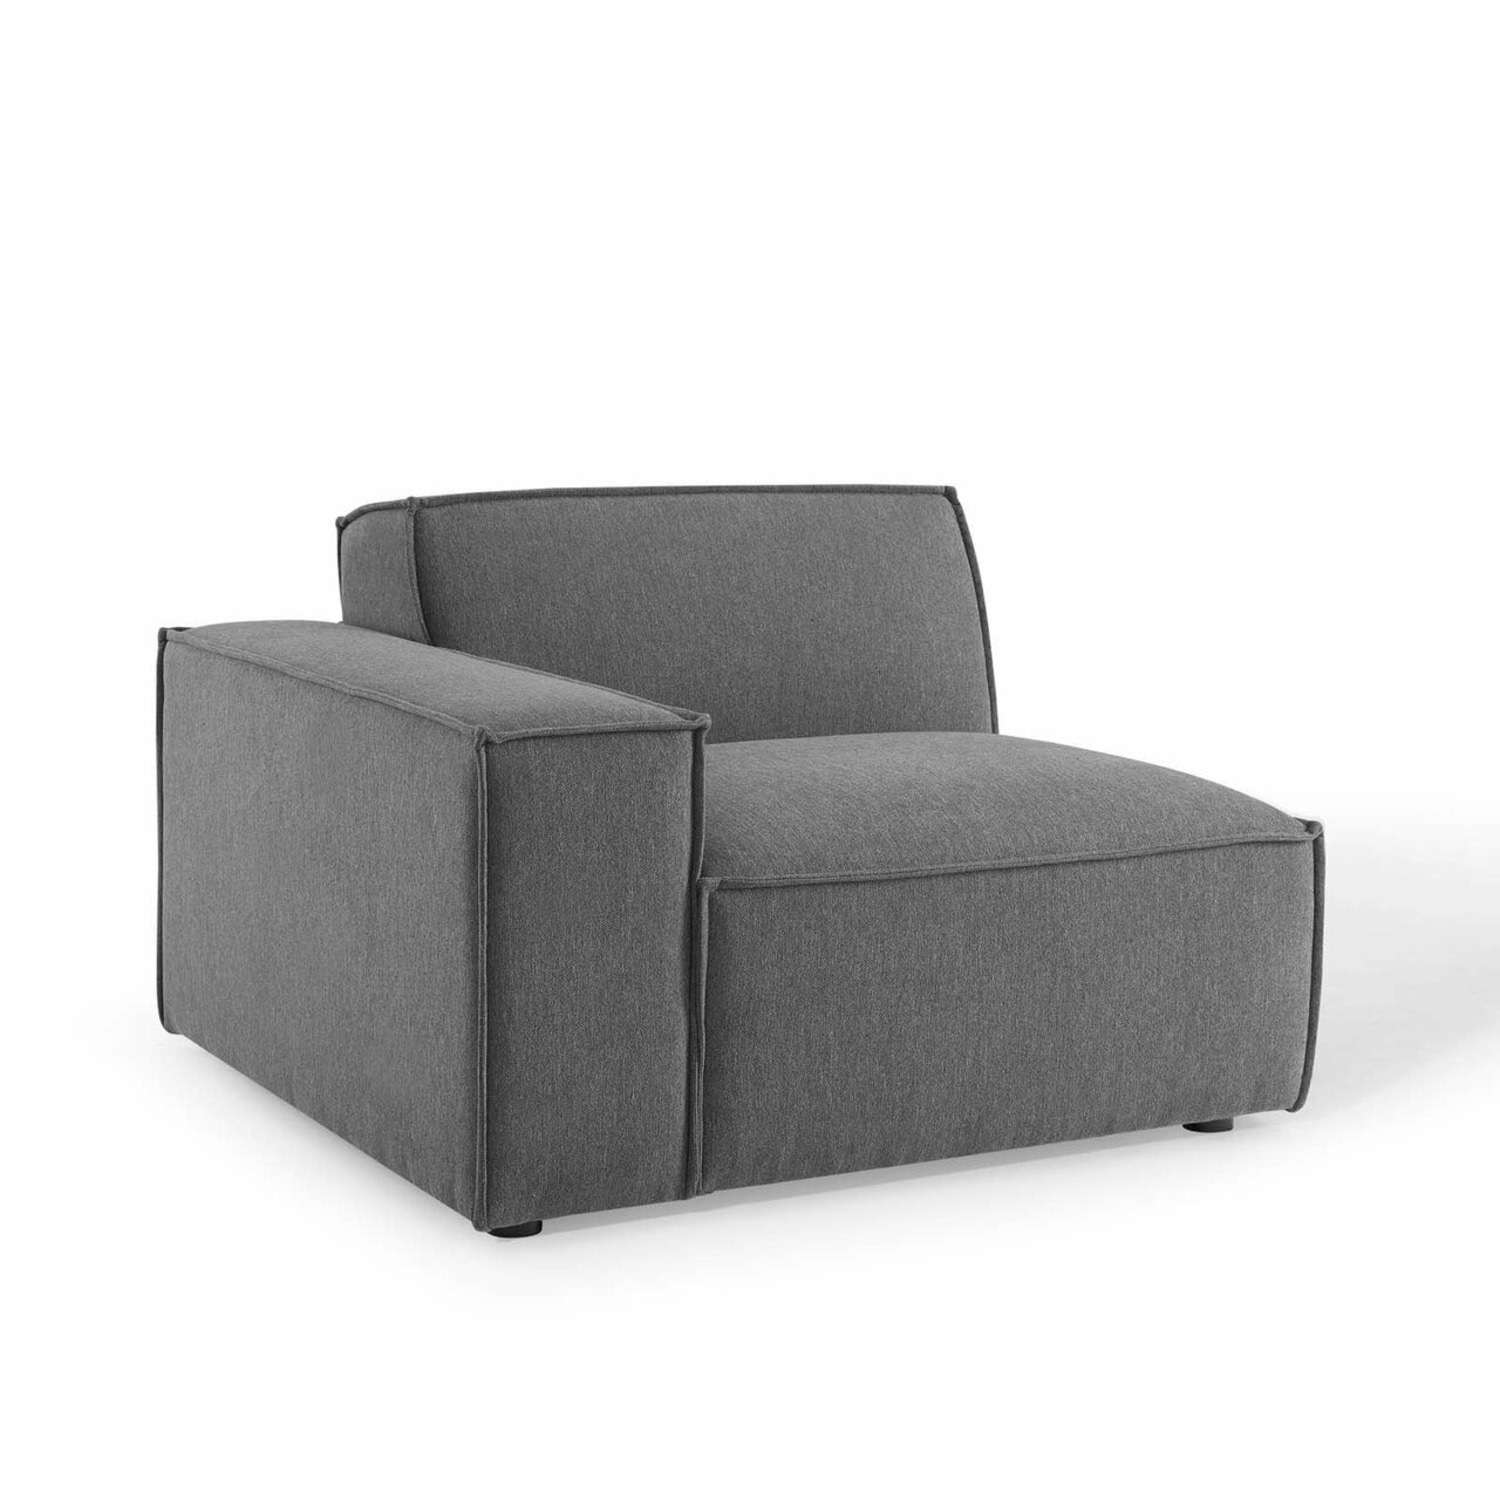 4-Piece Sectional Sofa In Charcoal Fabric Finish - image-4